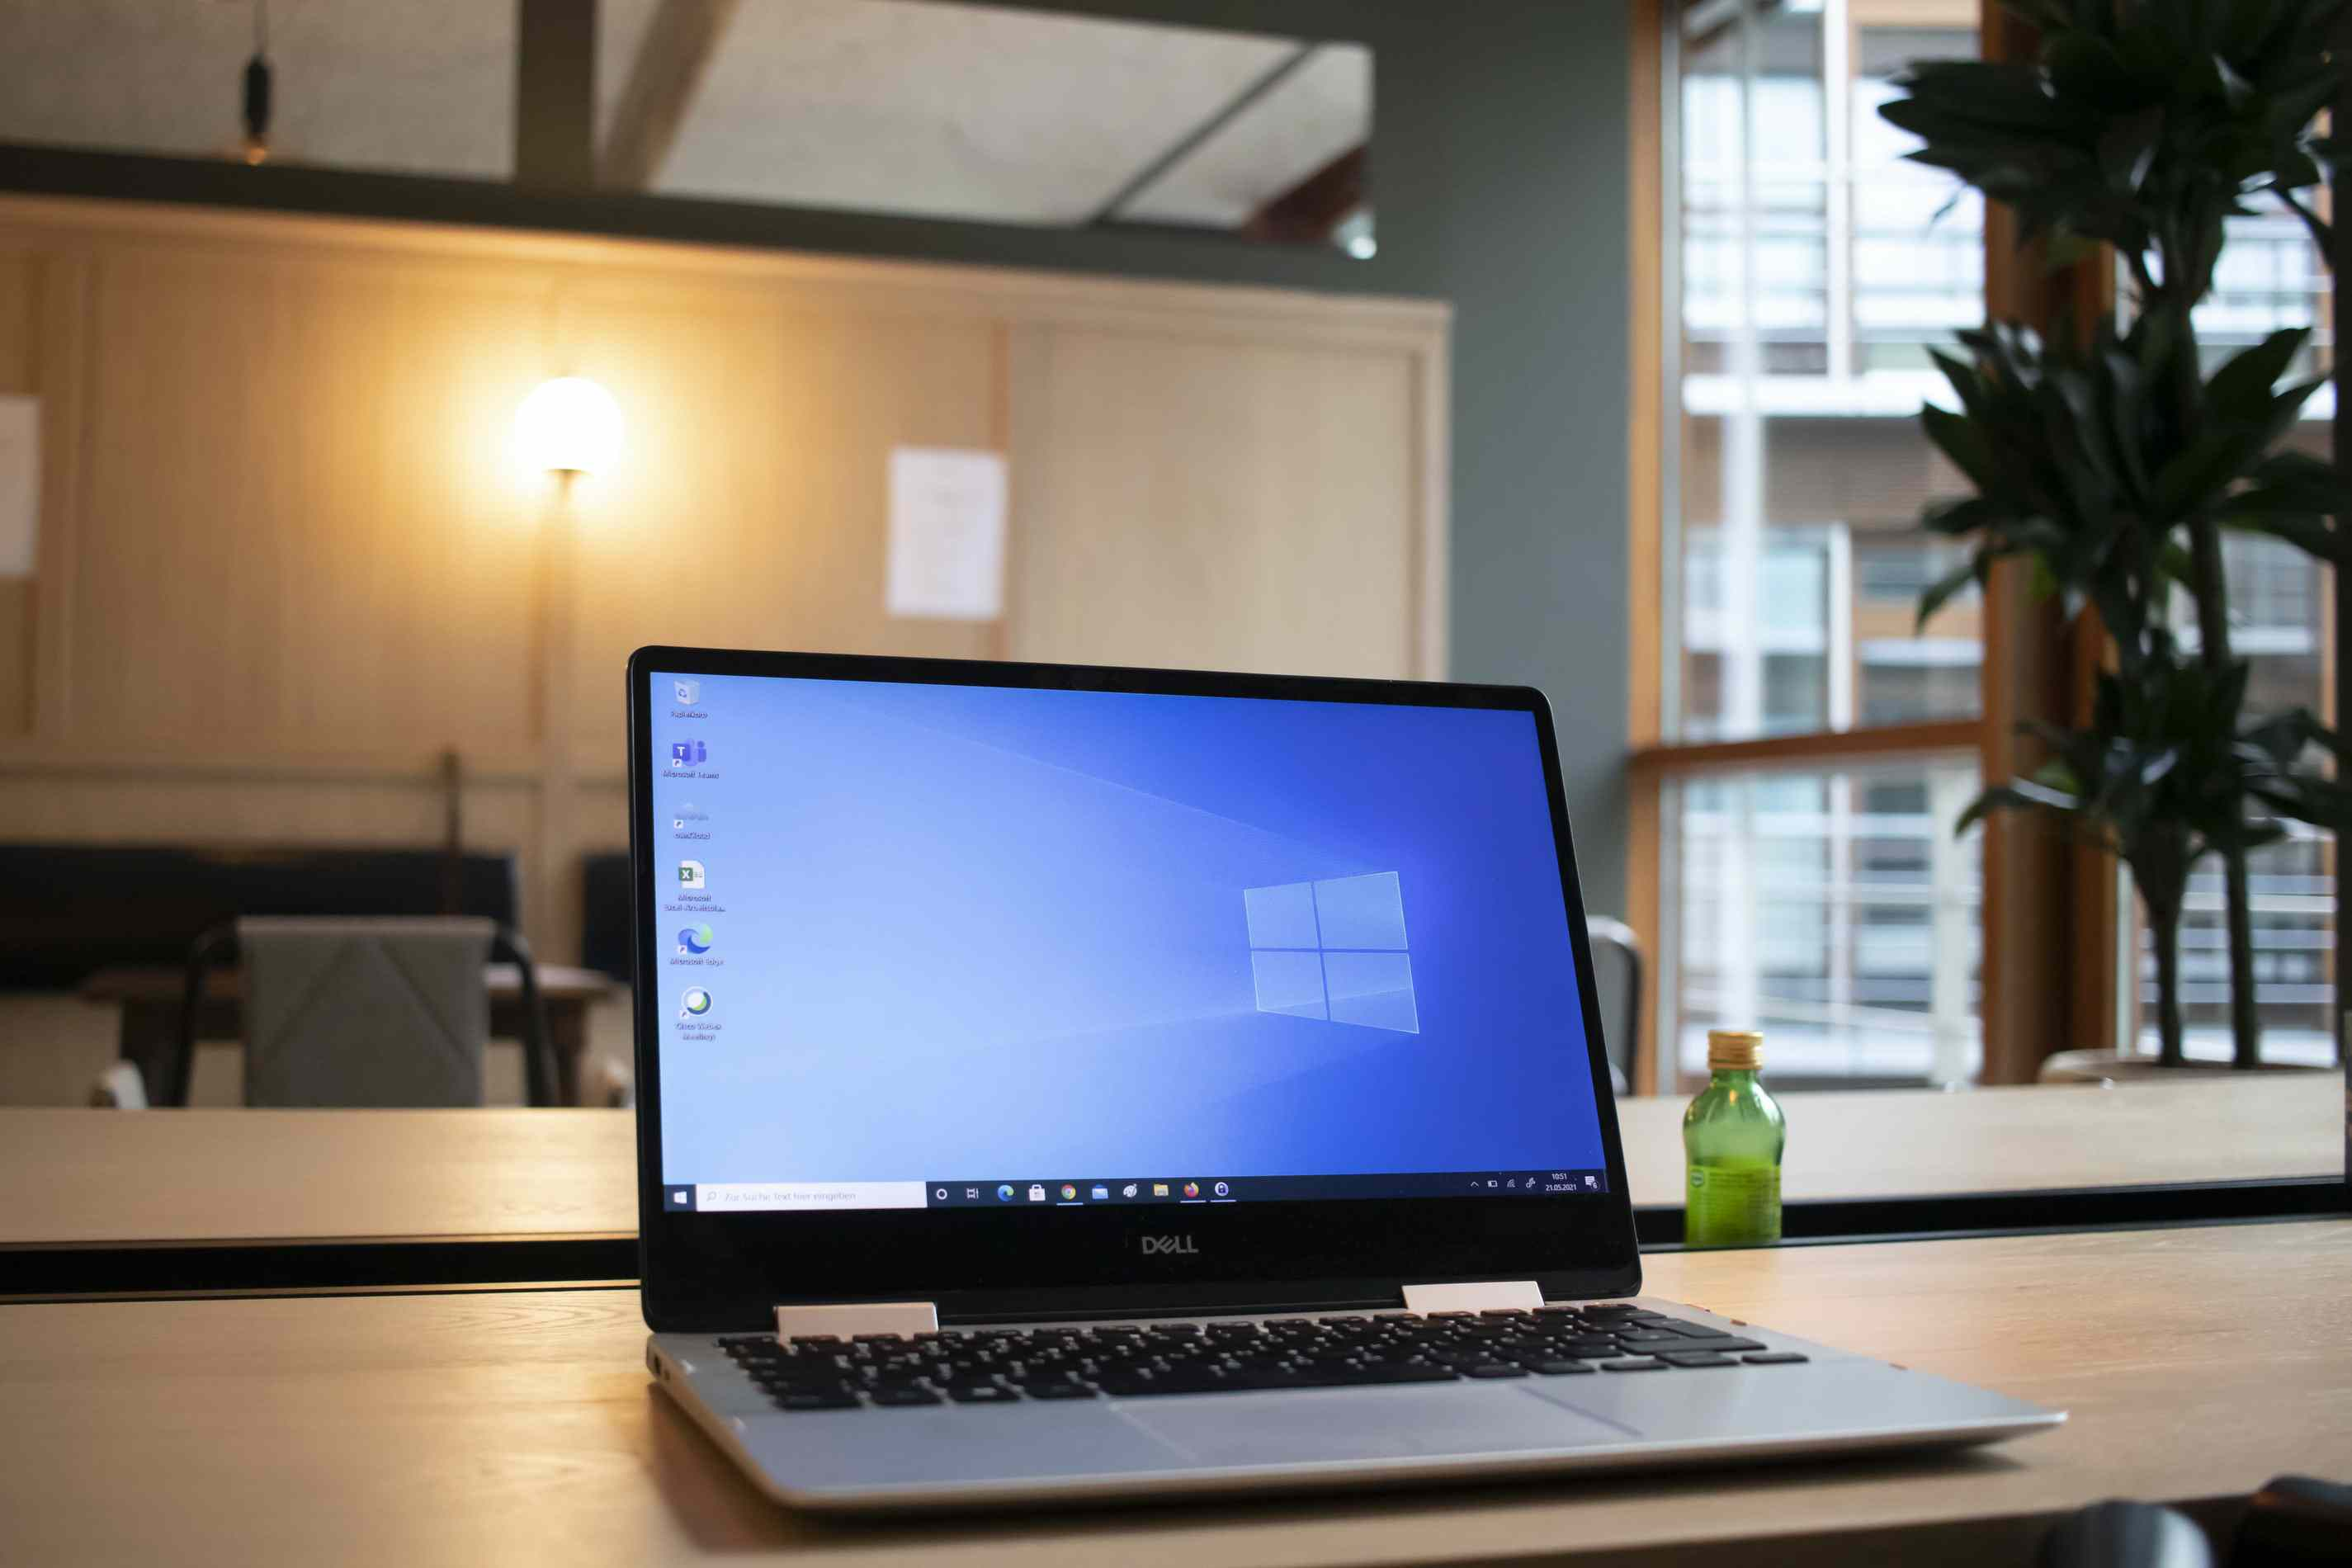 Windows laptop resting on a wooden conference table